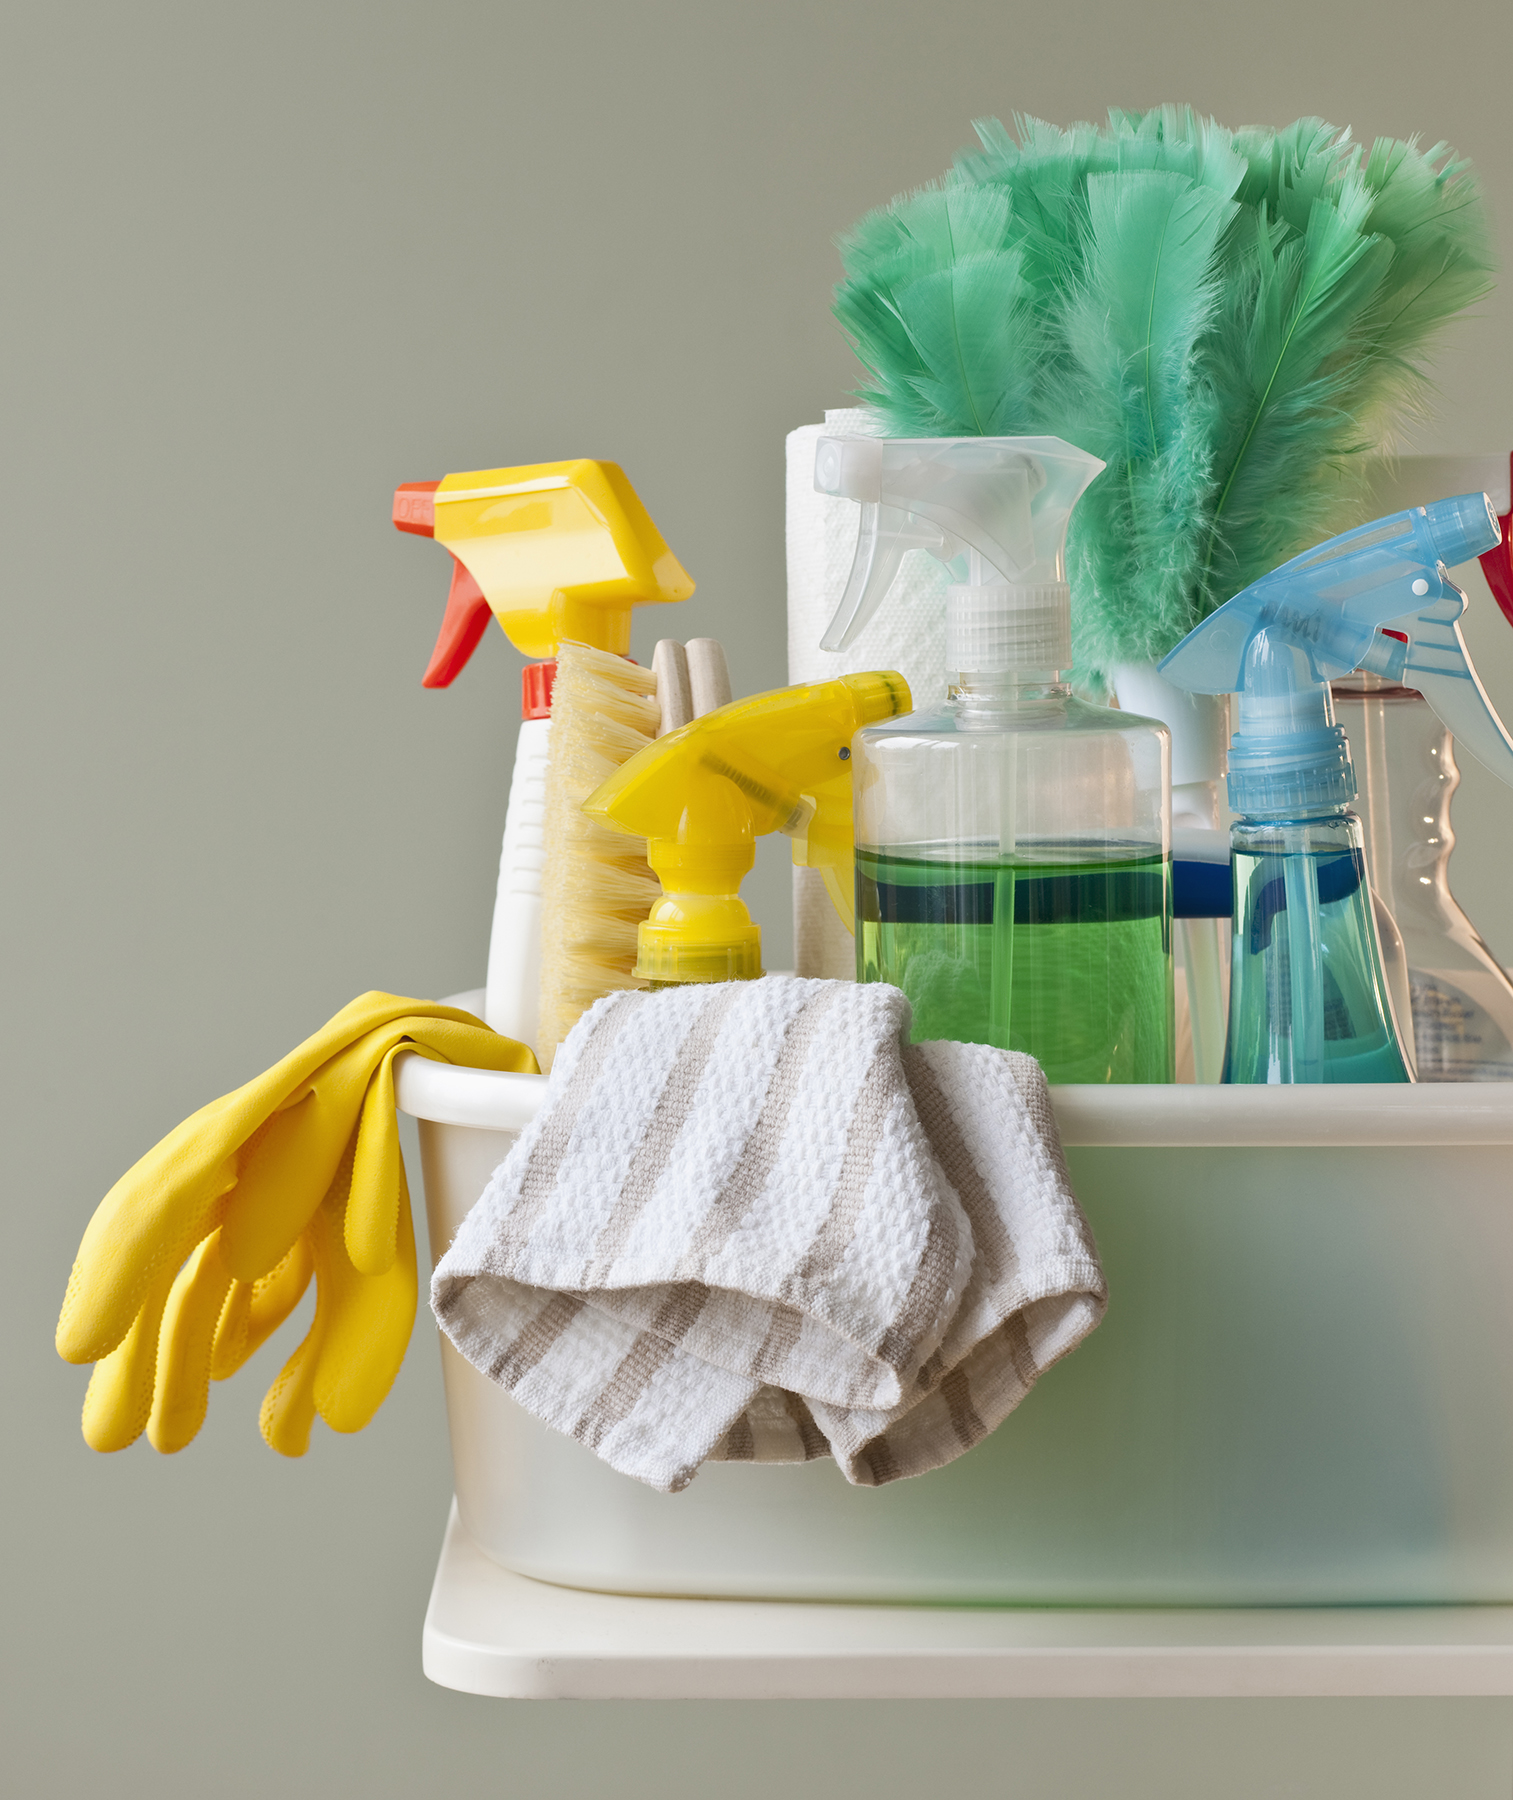 Cleaning supplies and dish towel